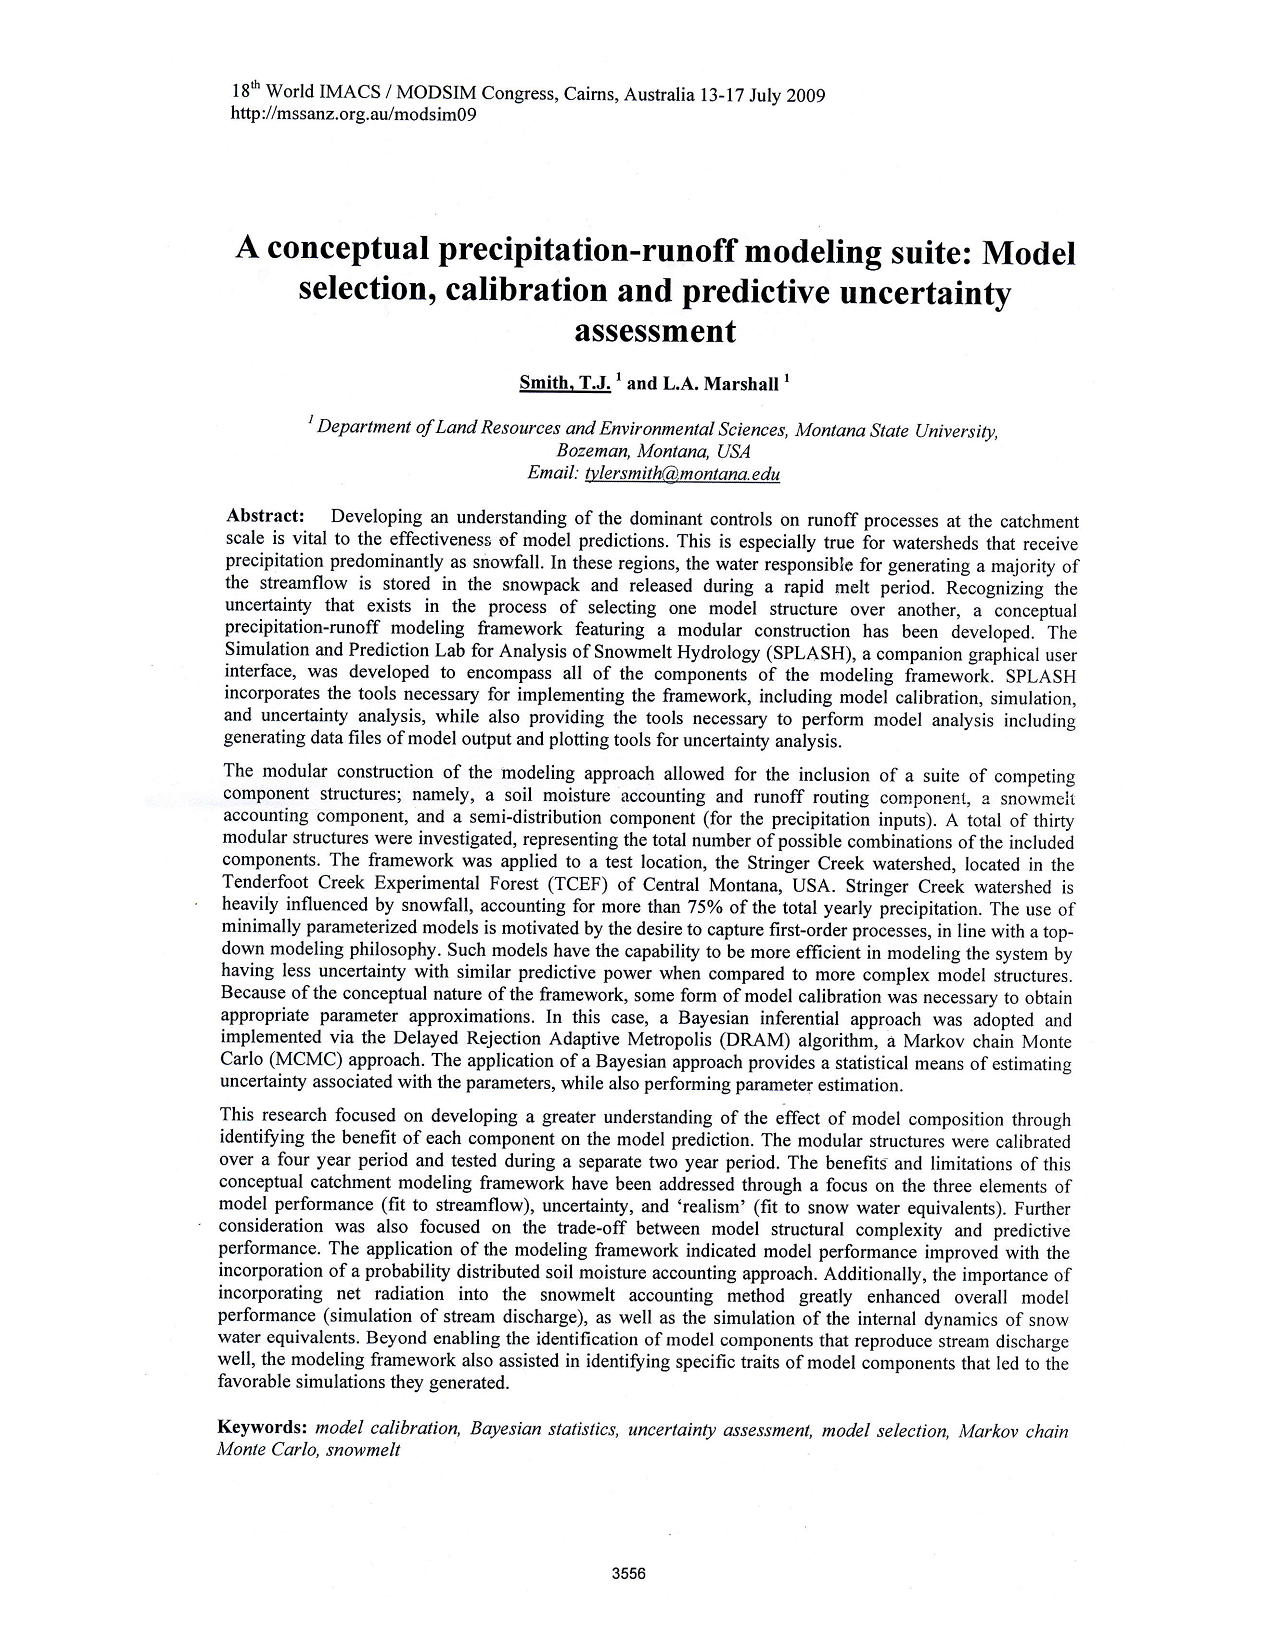 Aconceptual precipitation-run off modeling suite; model selection,calibration and predic tive uncertainty assessment7